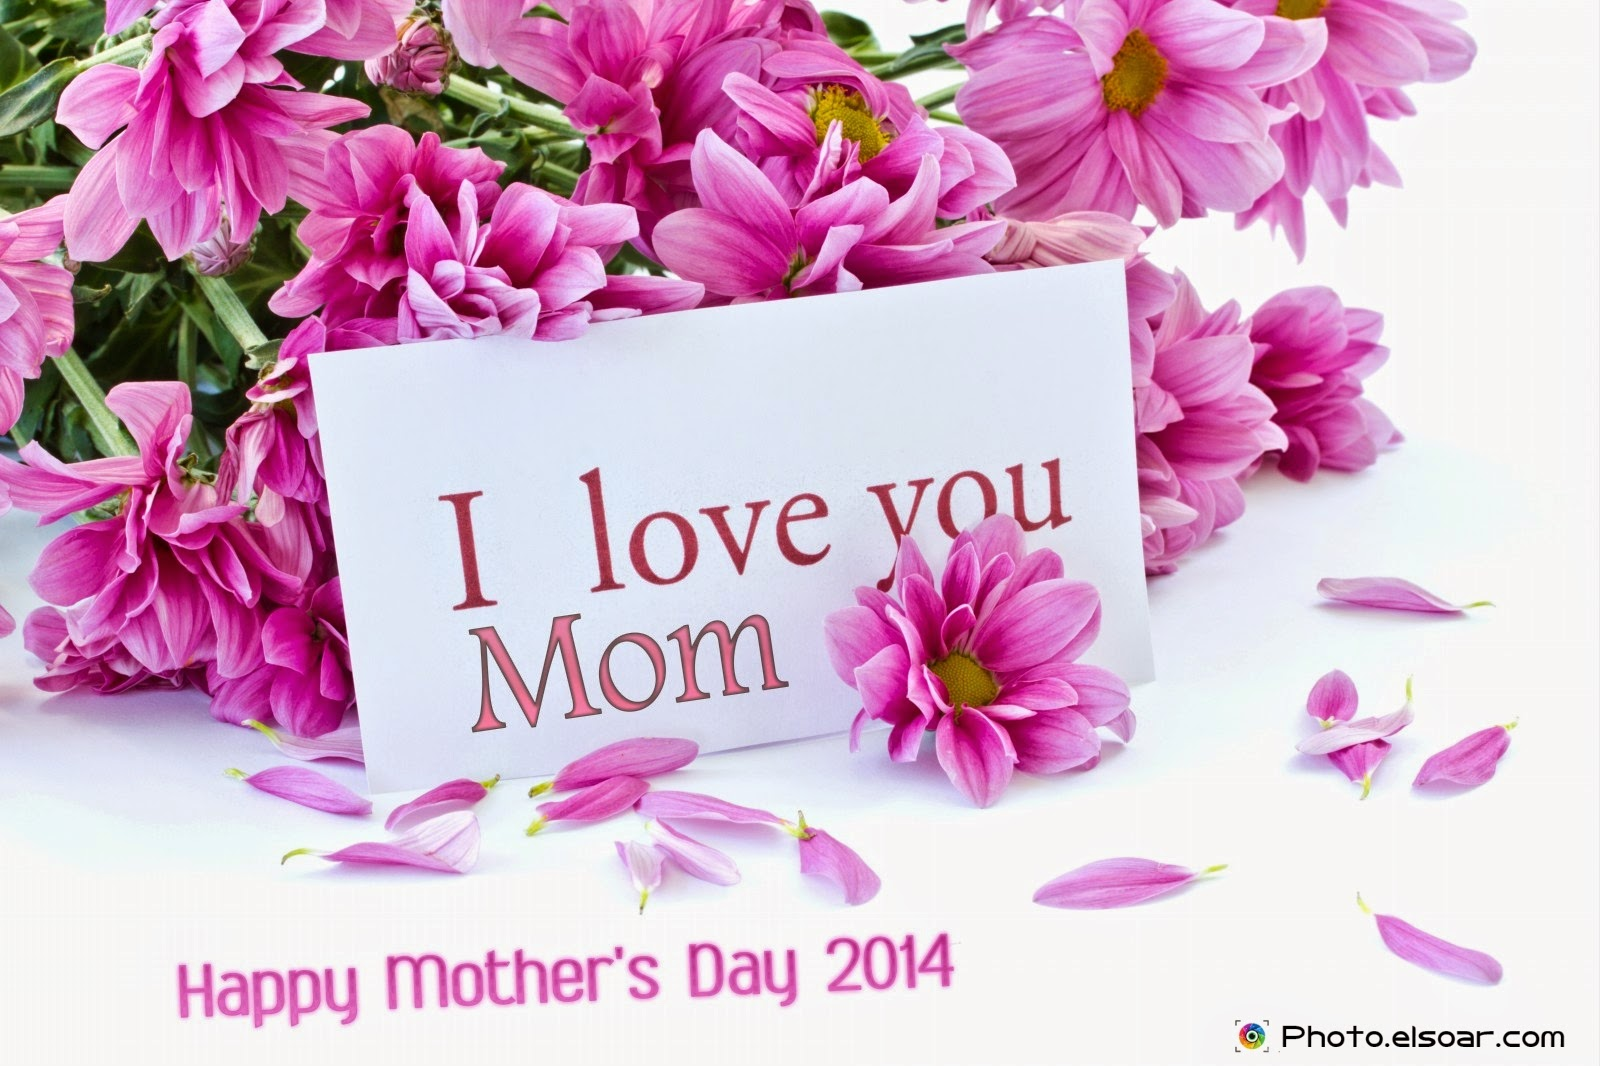 Happy Mother s Day May 11 2014 New Wallpapers and Greetings Download ~ Super HD Wallpaperss